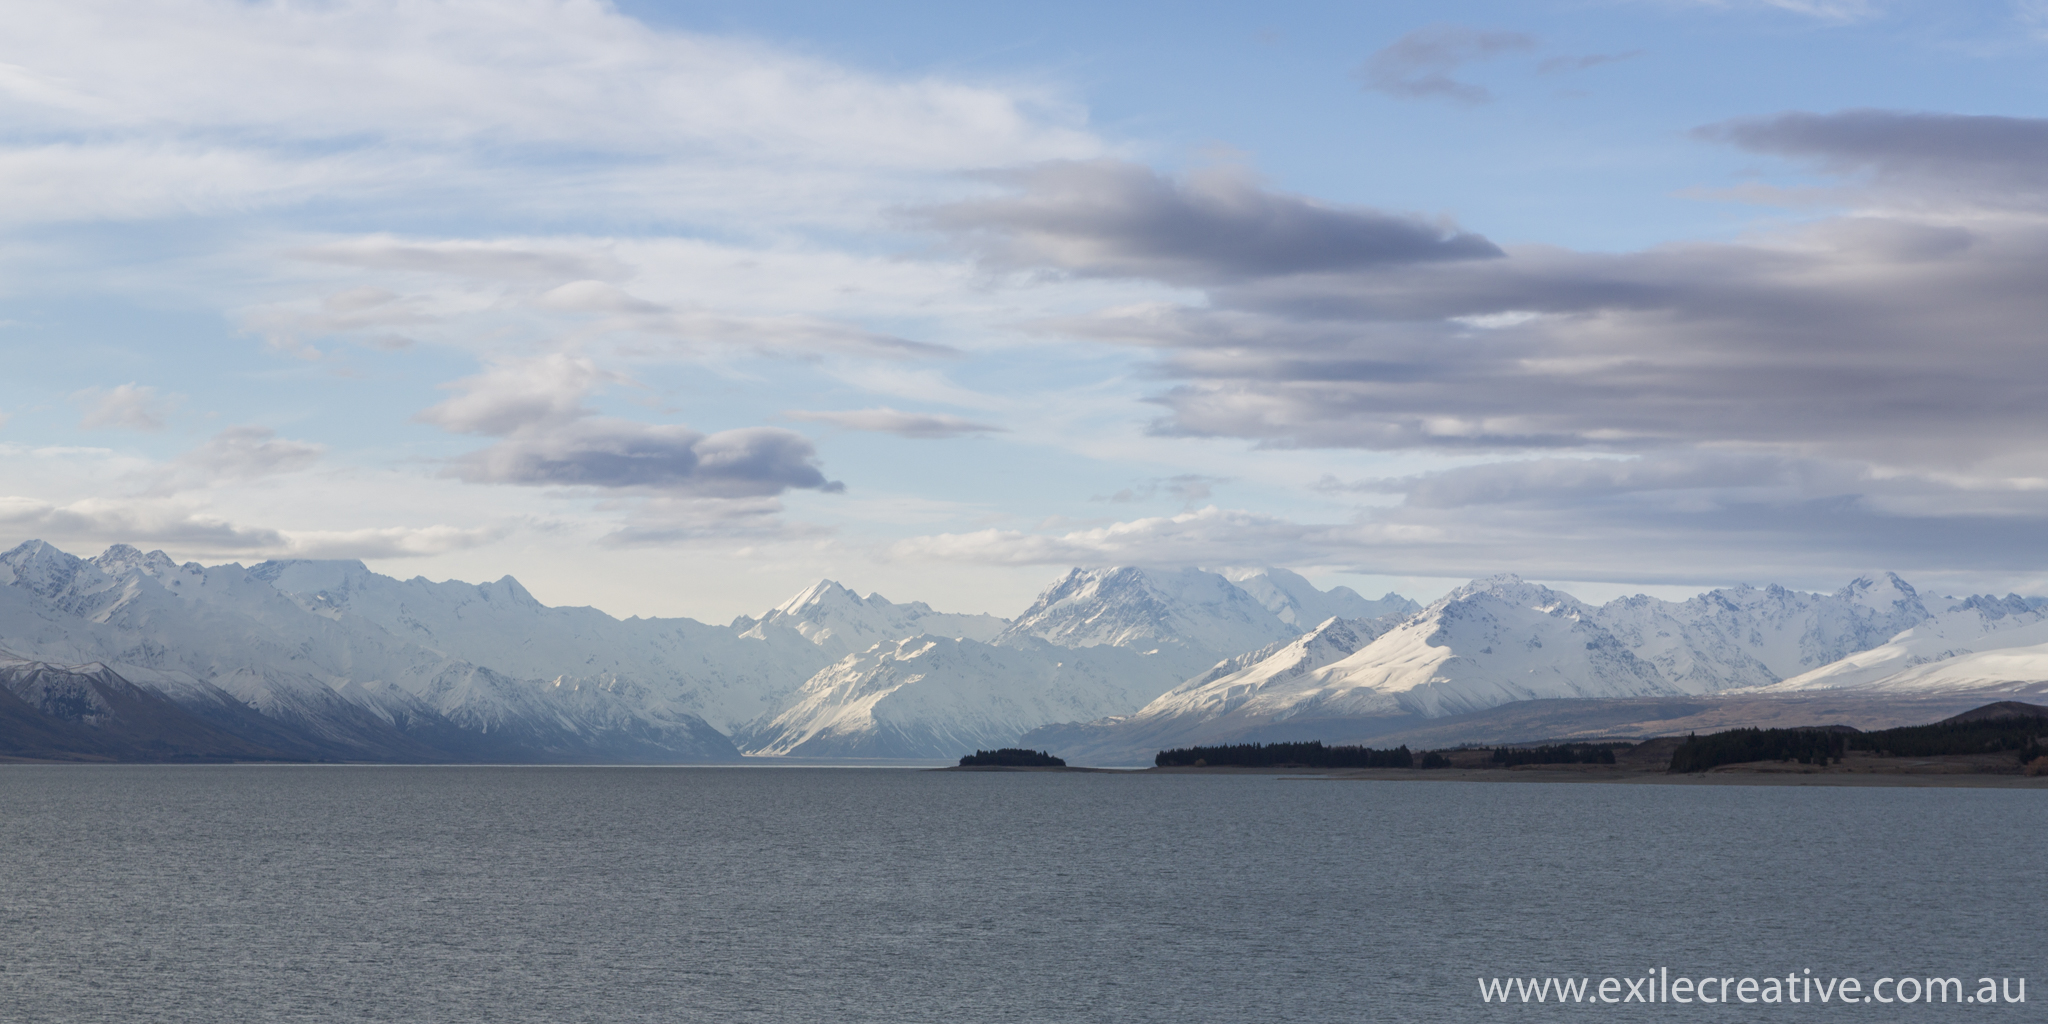 Lake Pukaki from the South.  Somewhere in the distance is Mount Cook.  Excited!  Canon 5Dmiii, 24-105L  @ 85mm, ISO320, f/8, 1/400s